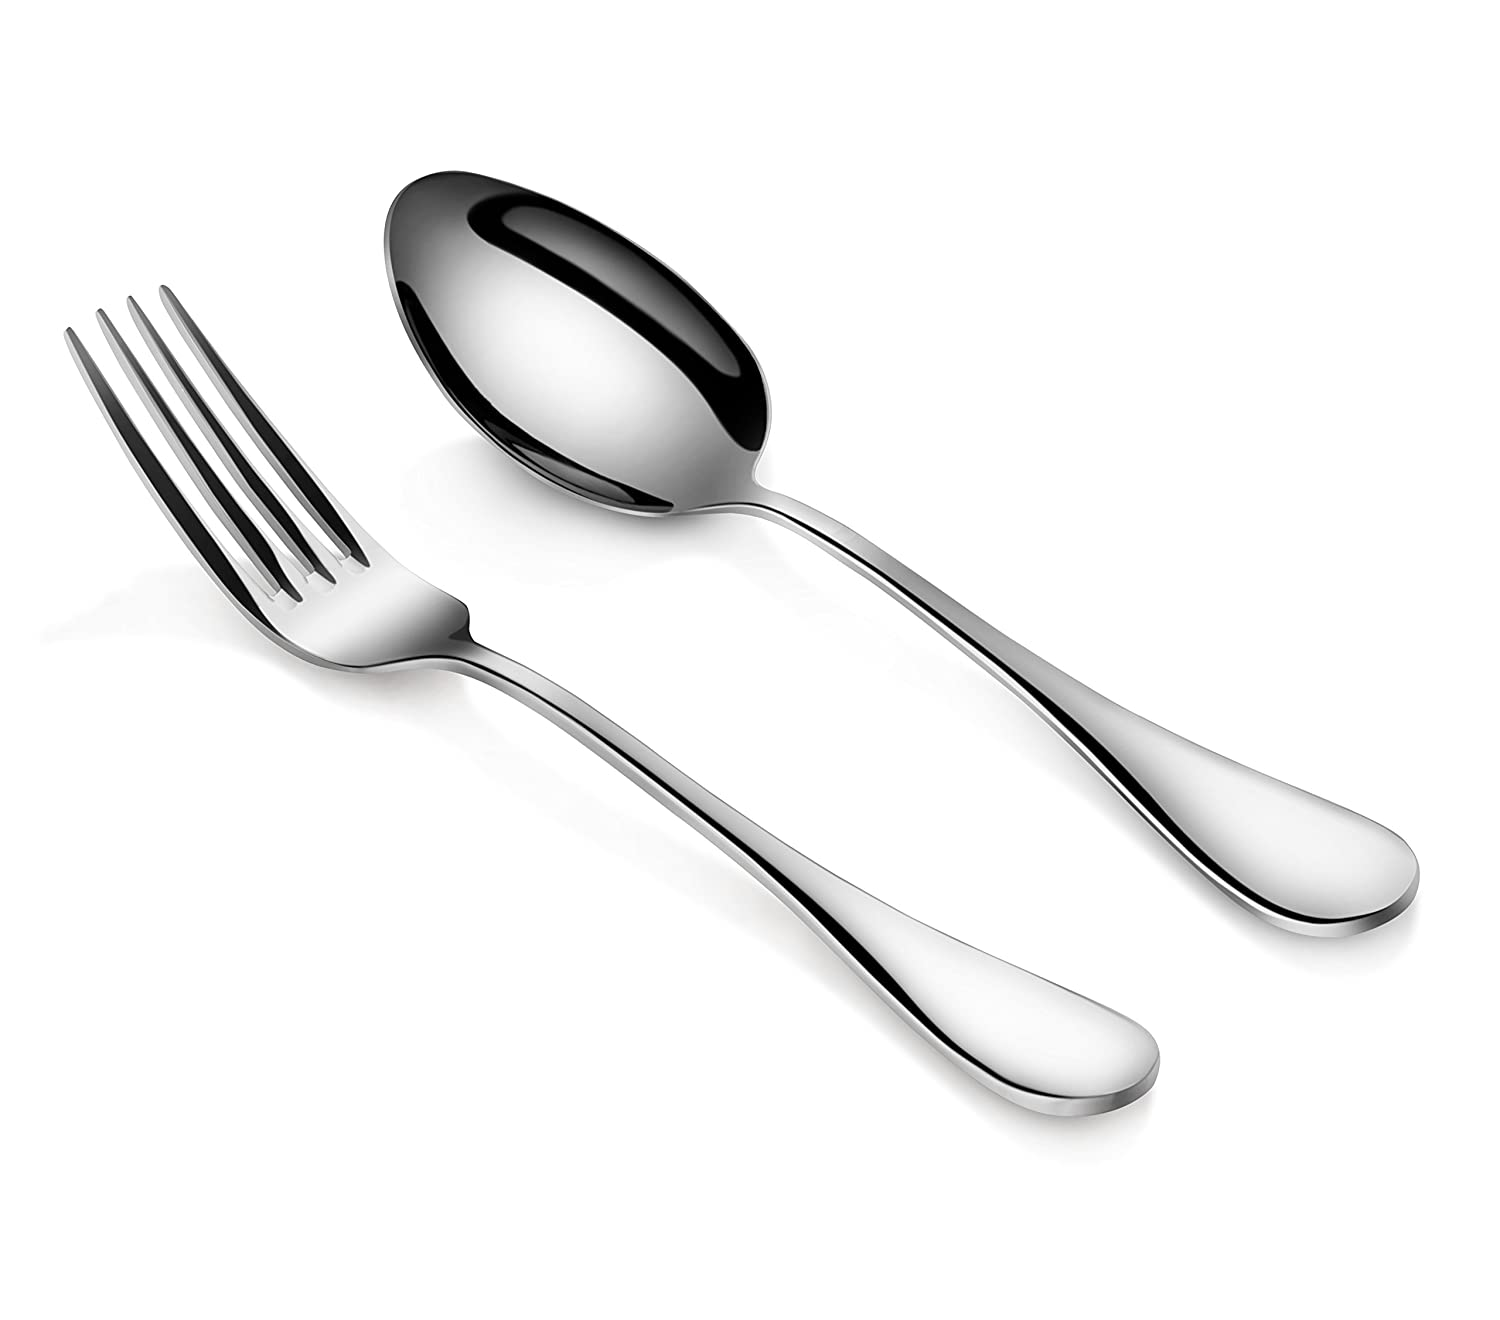 Artaste 56426 Rain 18/10 Stainless Steel Table Serving Spoons and Forks Set (Set of 6), Silver